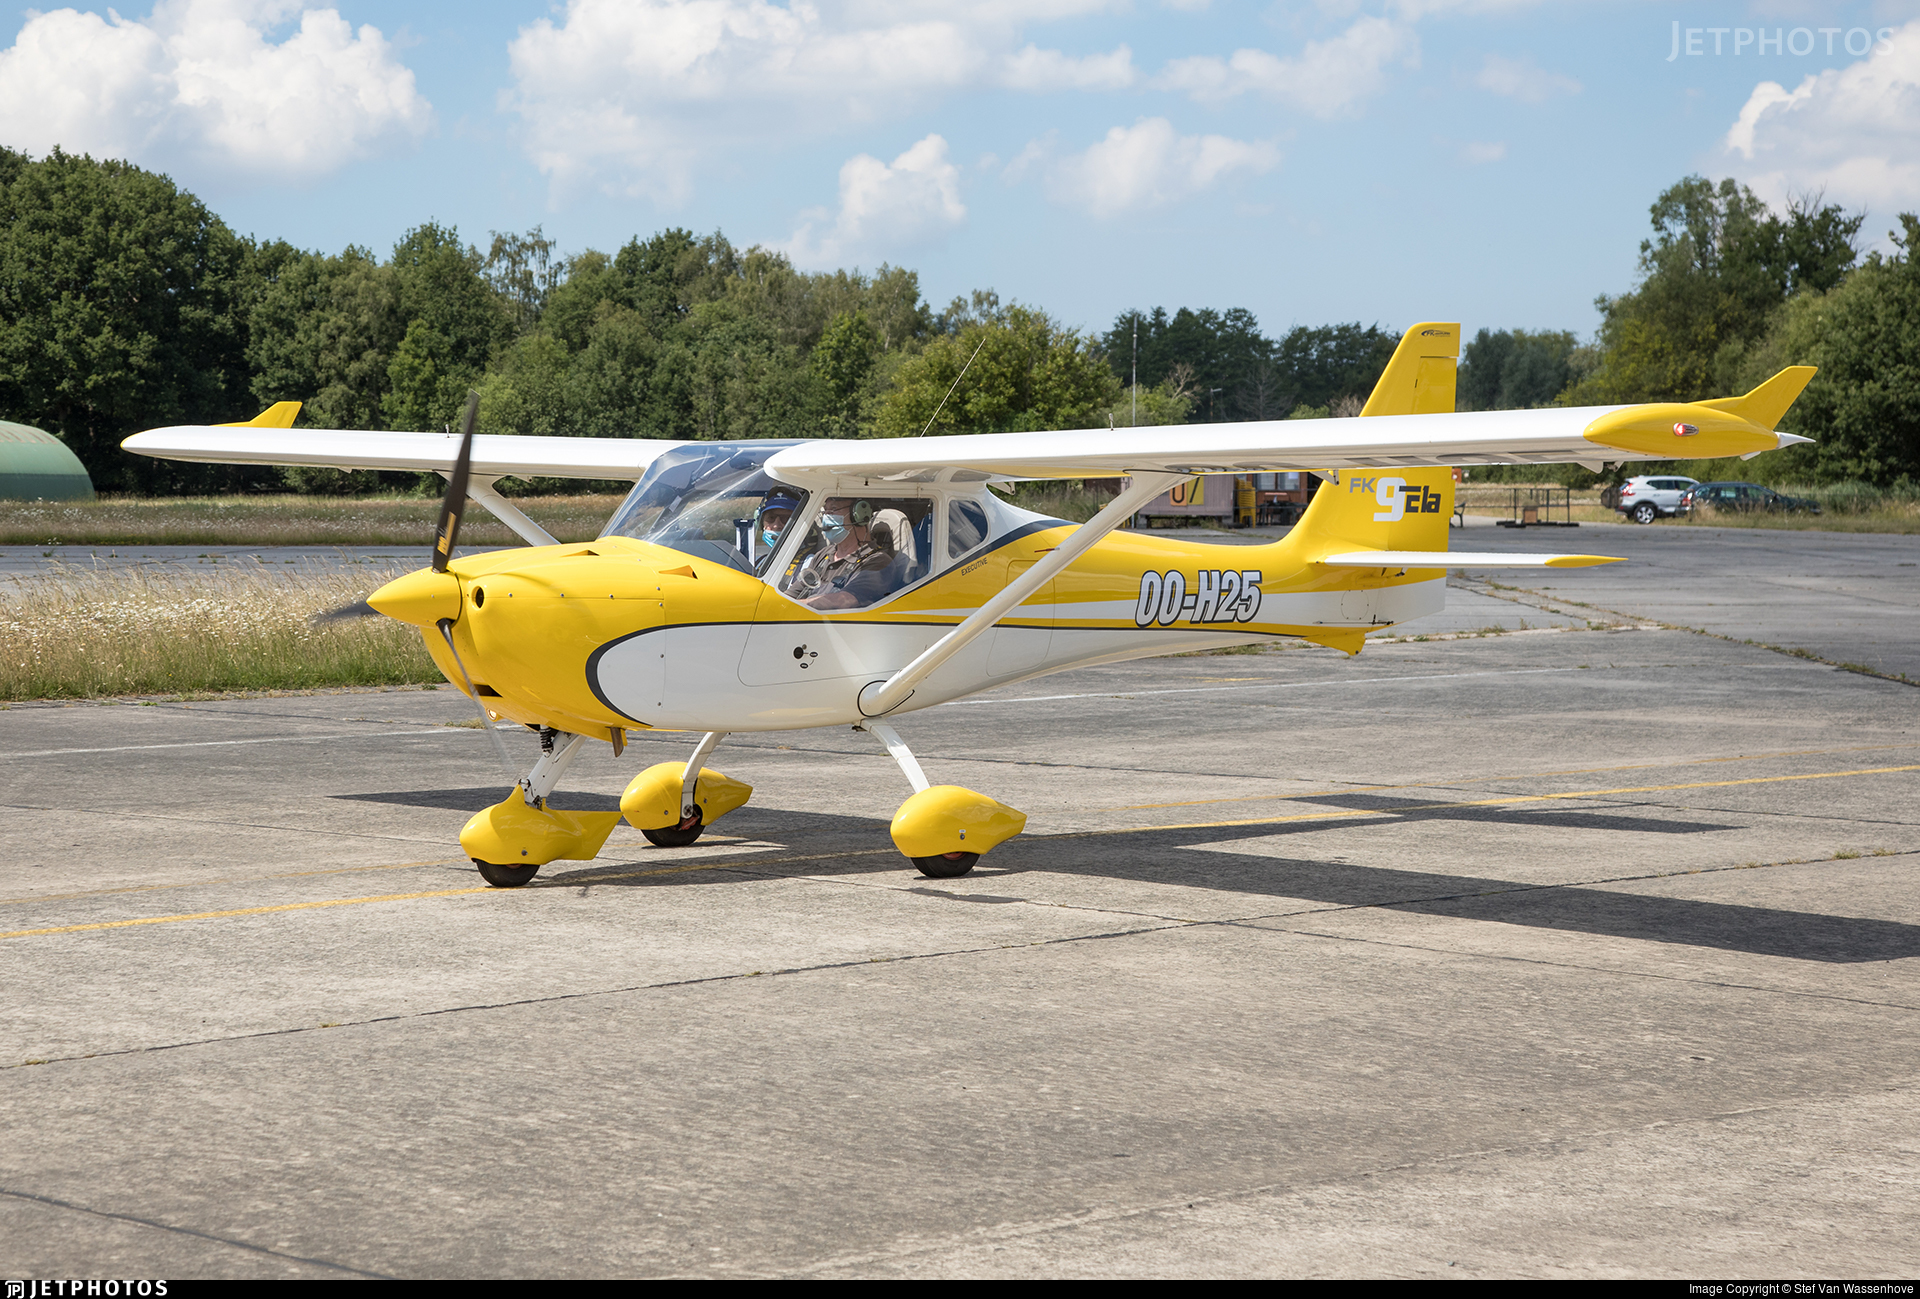 OO-H25 - B & F Technik FK-9 ELA - Private